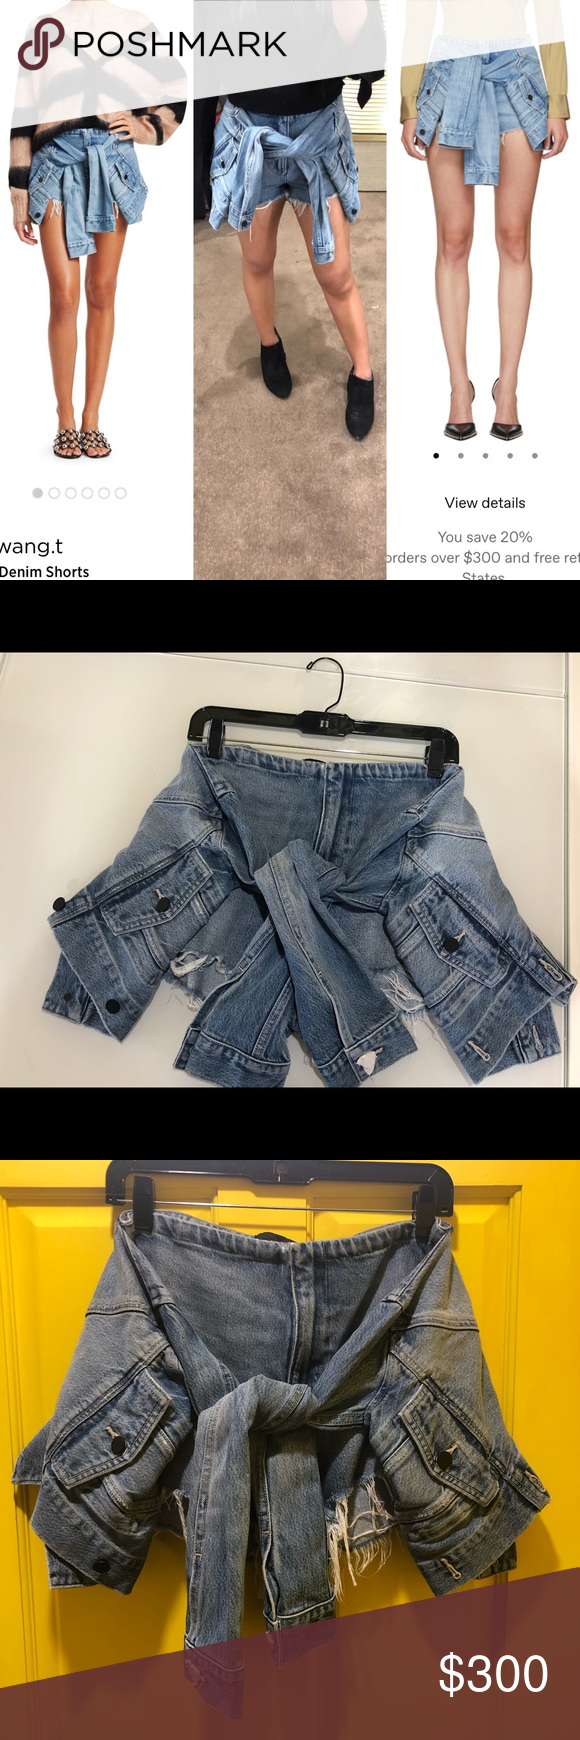 bd93568b4d NWT Alexander Wang tie front jean shorts 29 Brand new with tag Faux jacket  tie waist